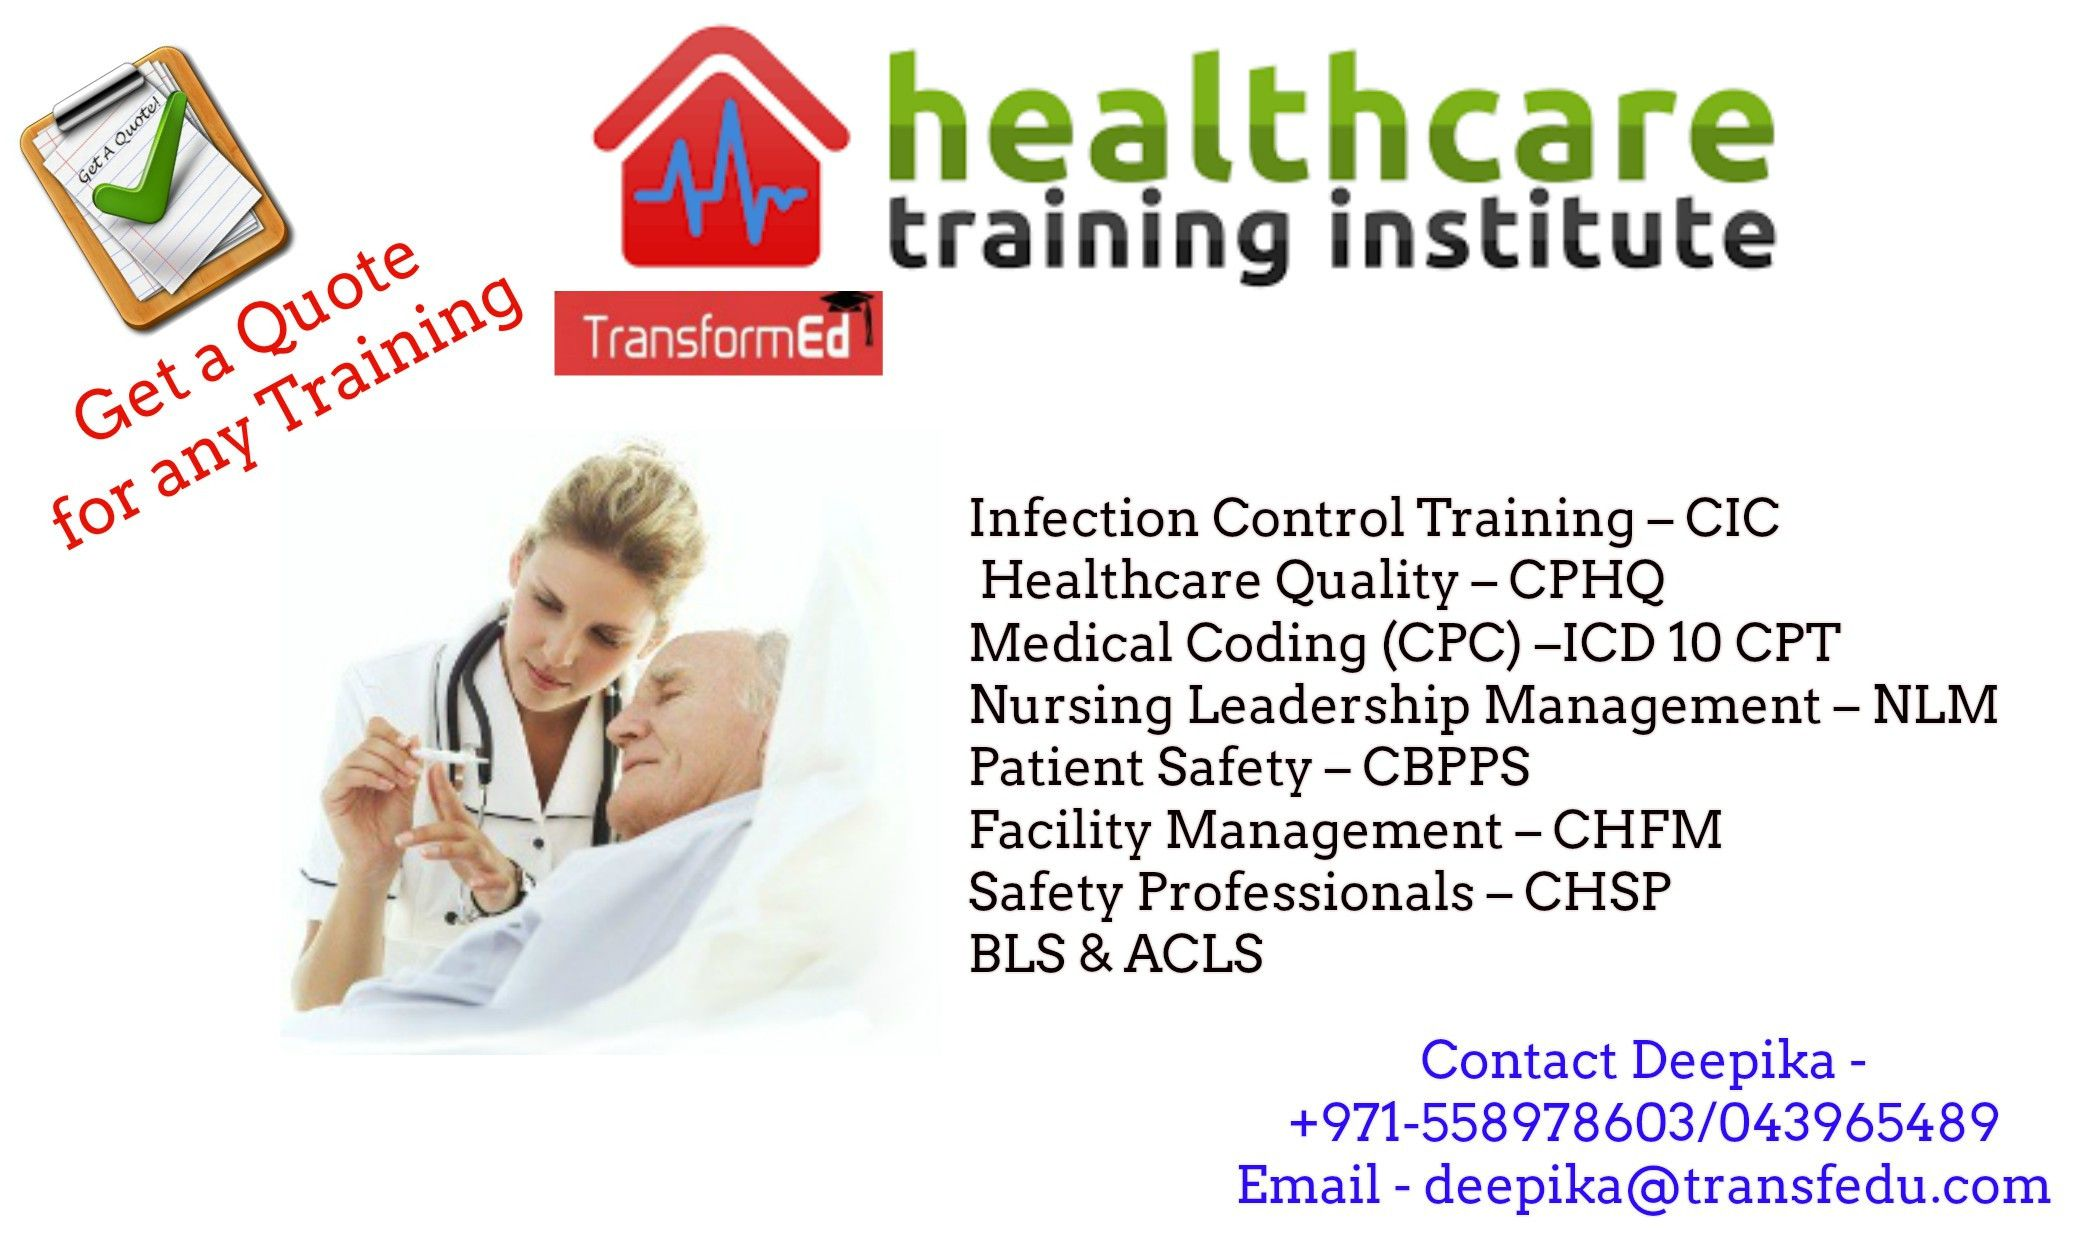 Healthcare Training | CIC Training | CPHQ - NAHQ |Medical Coding | Banking & Finance